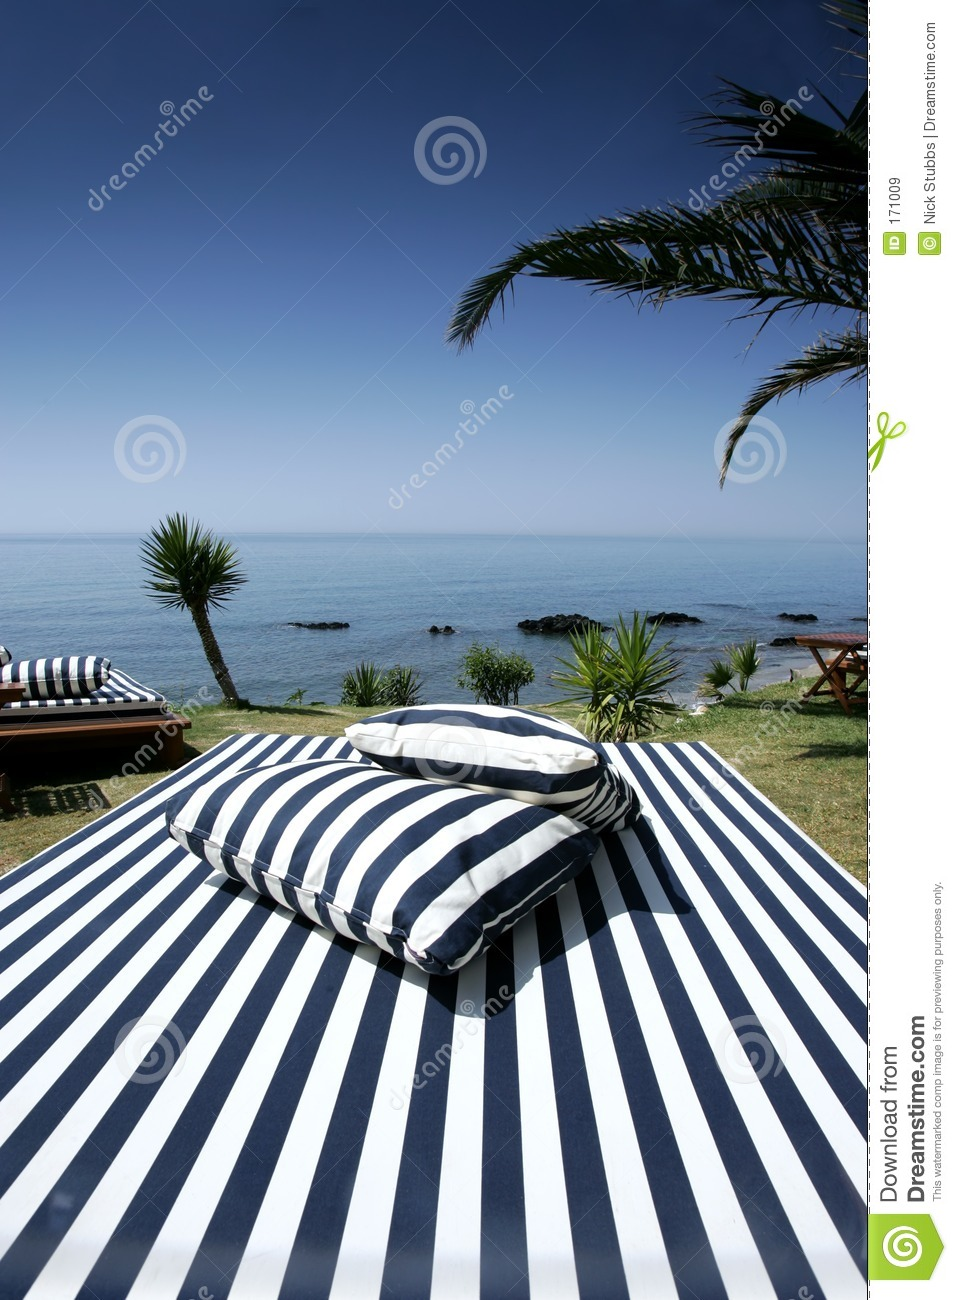 Striped Sunlounger and sunny sea views